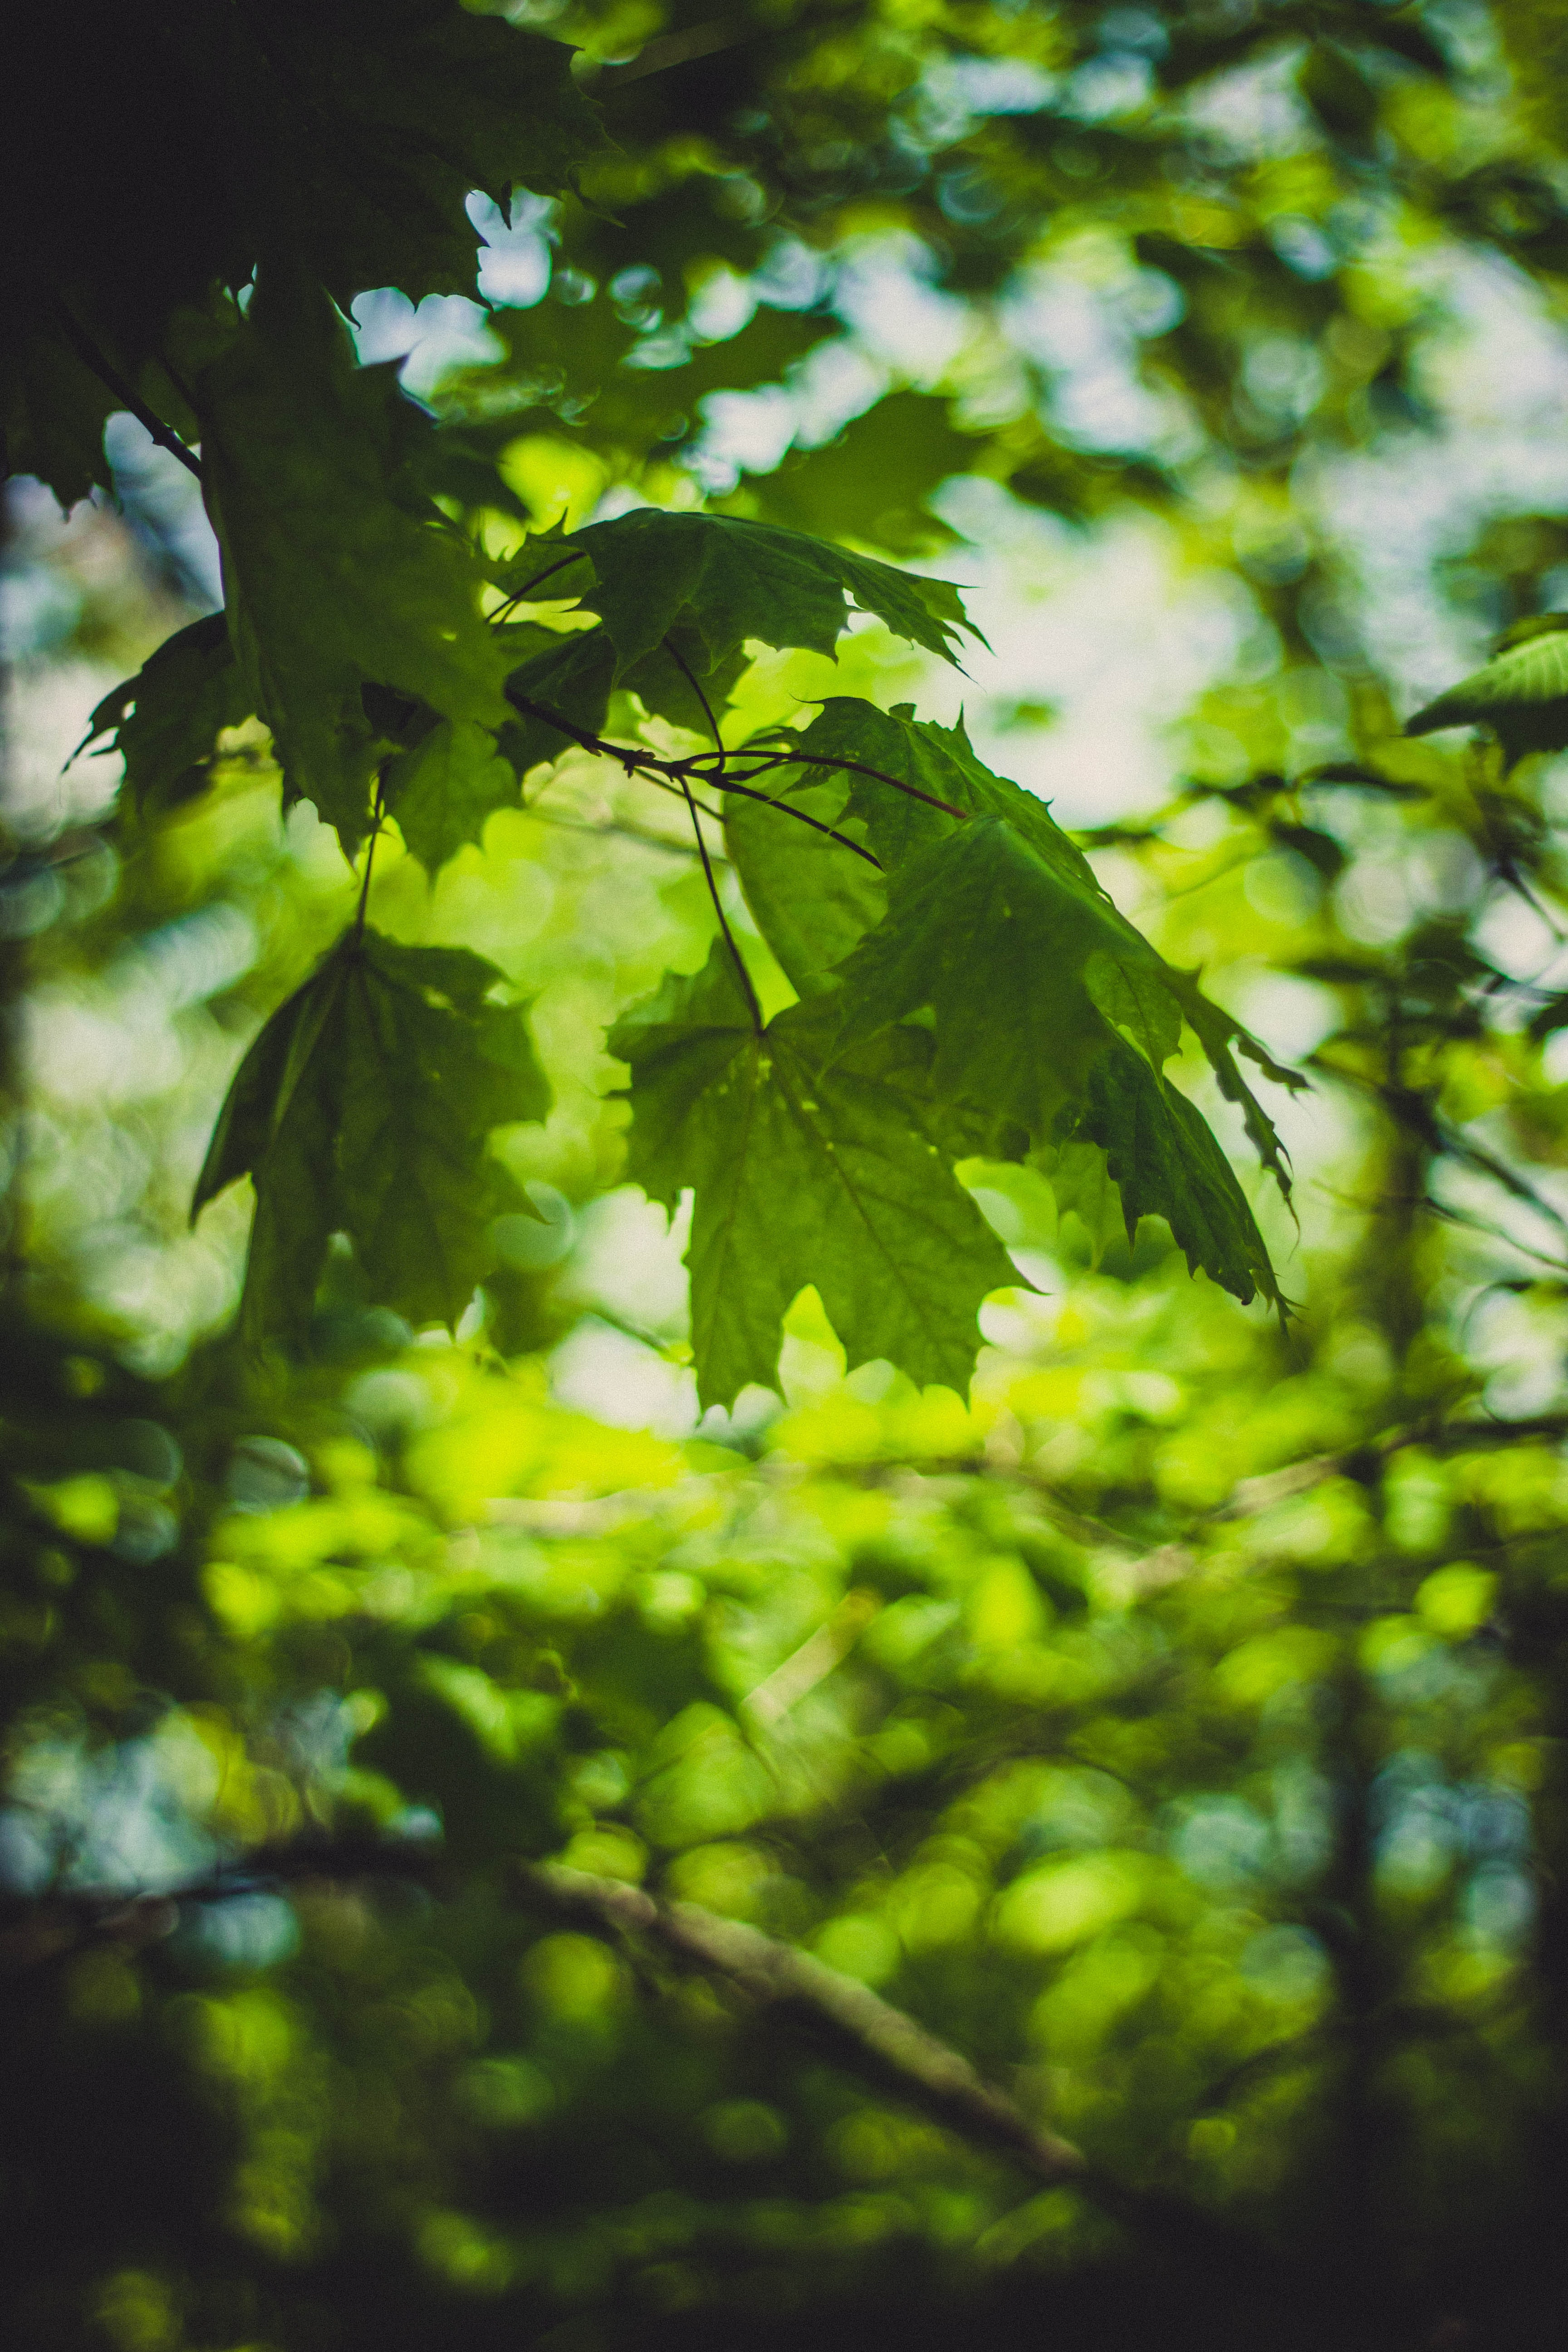 Green Lobed Leaves on Branch, Outdoors, Organic, Plant, Maple, HQ Photo